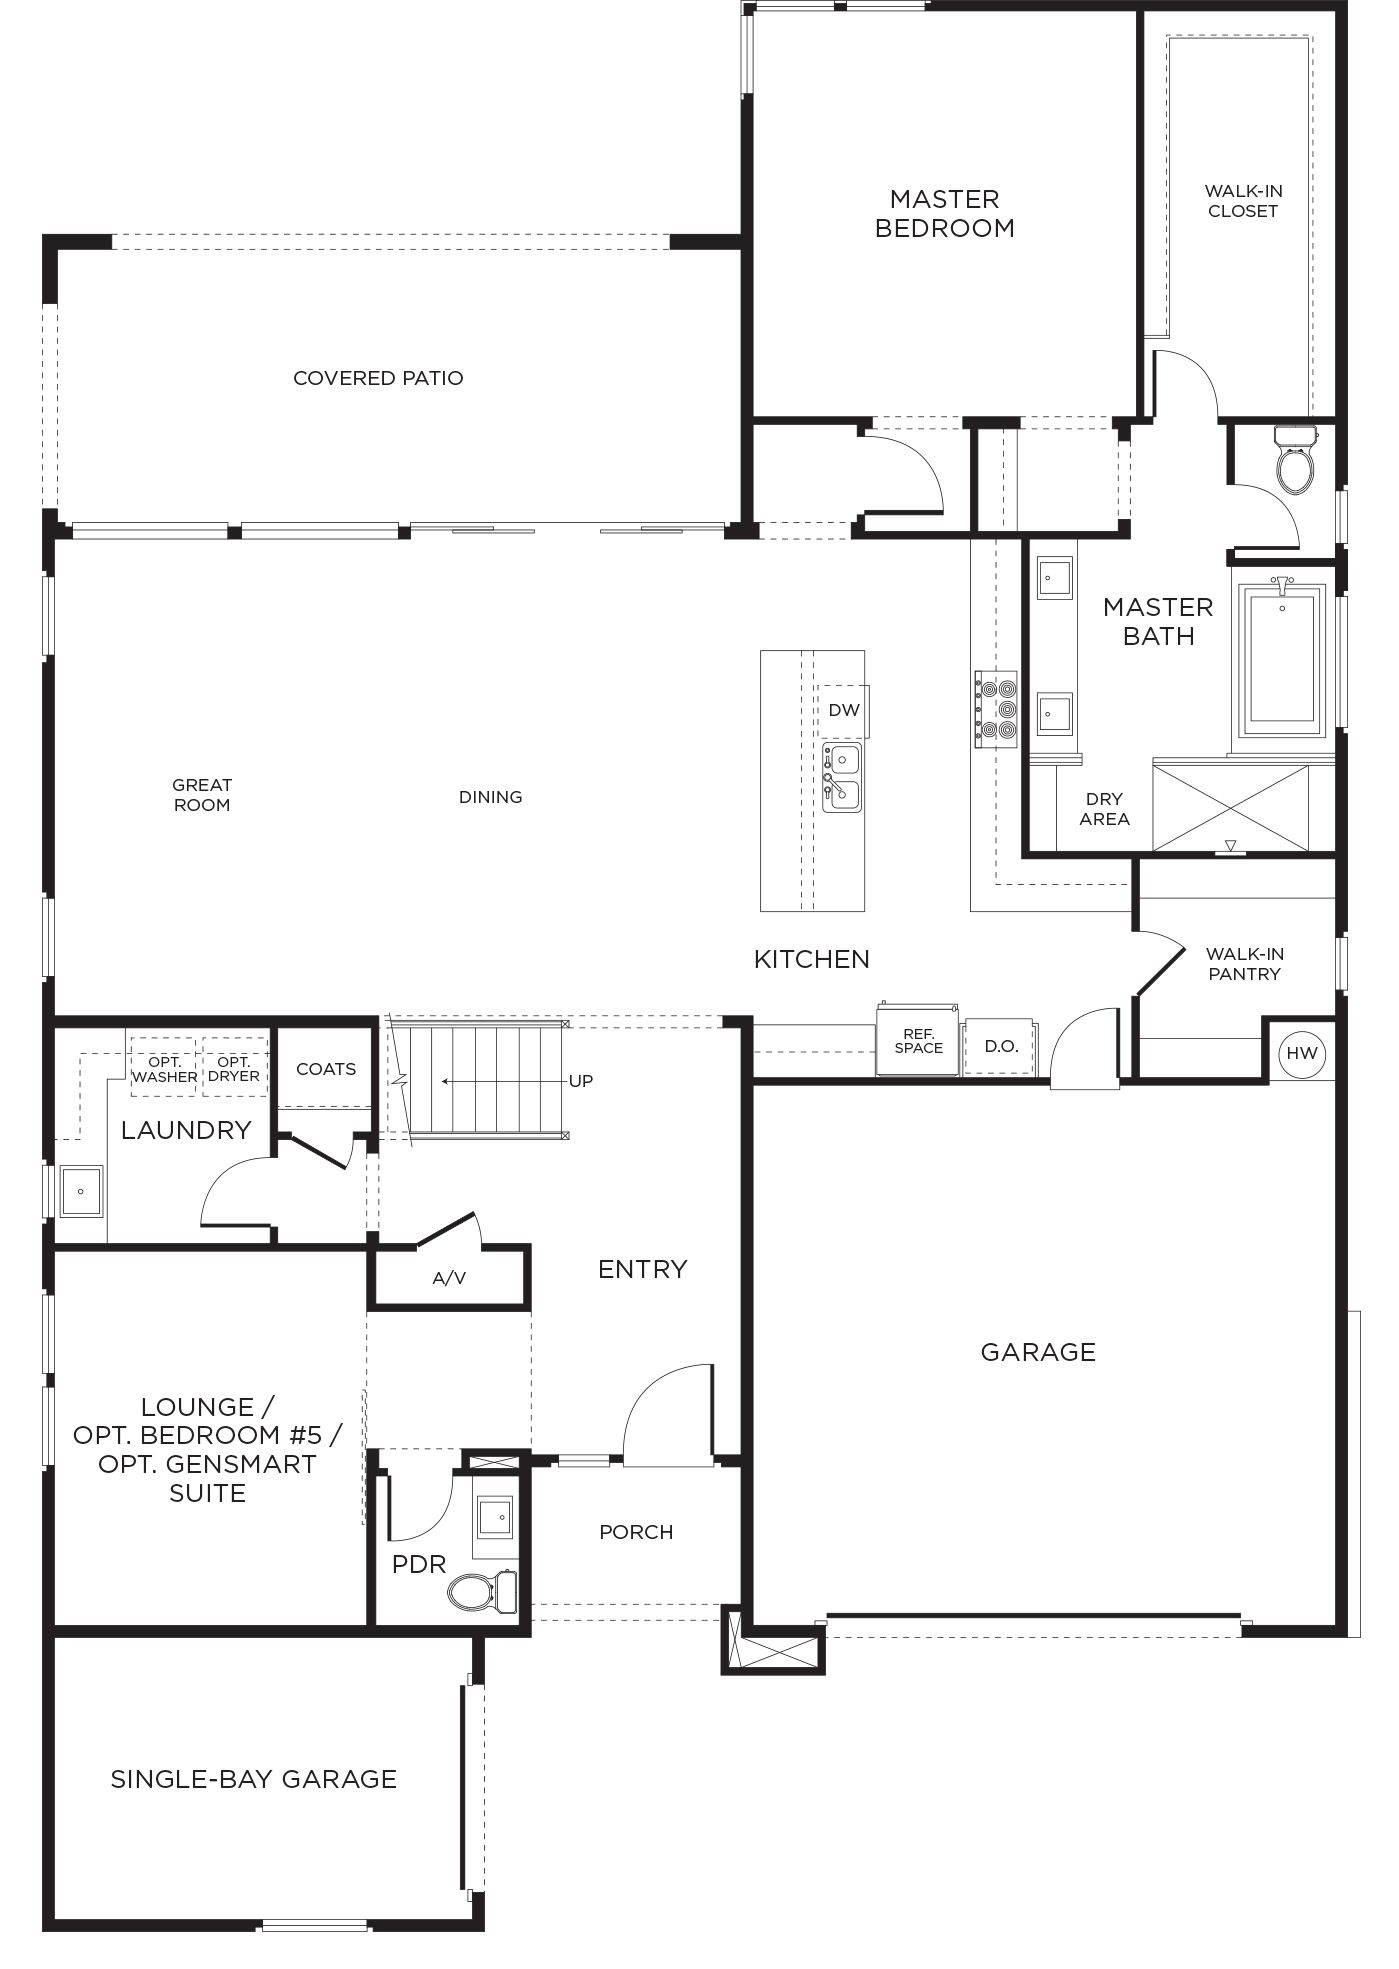 Find Your New Pardee Home Today Pardee Homes Walk In Pantry Floor Plans,Table Engagement Decoration Ideas At Home